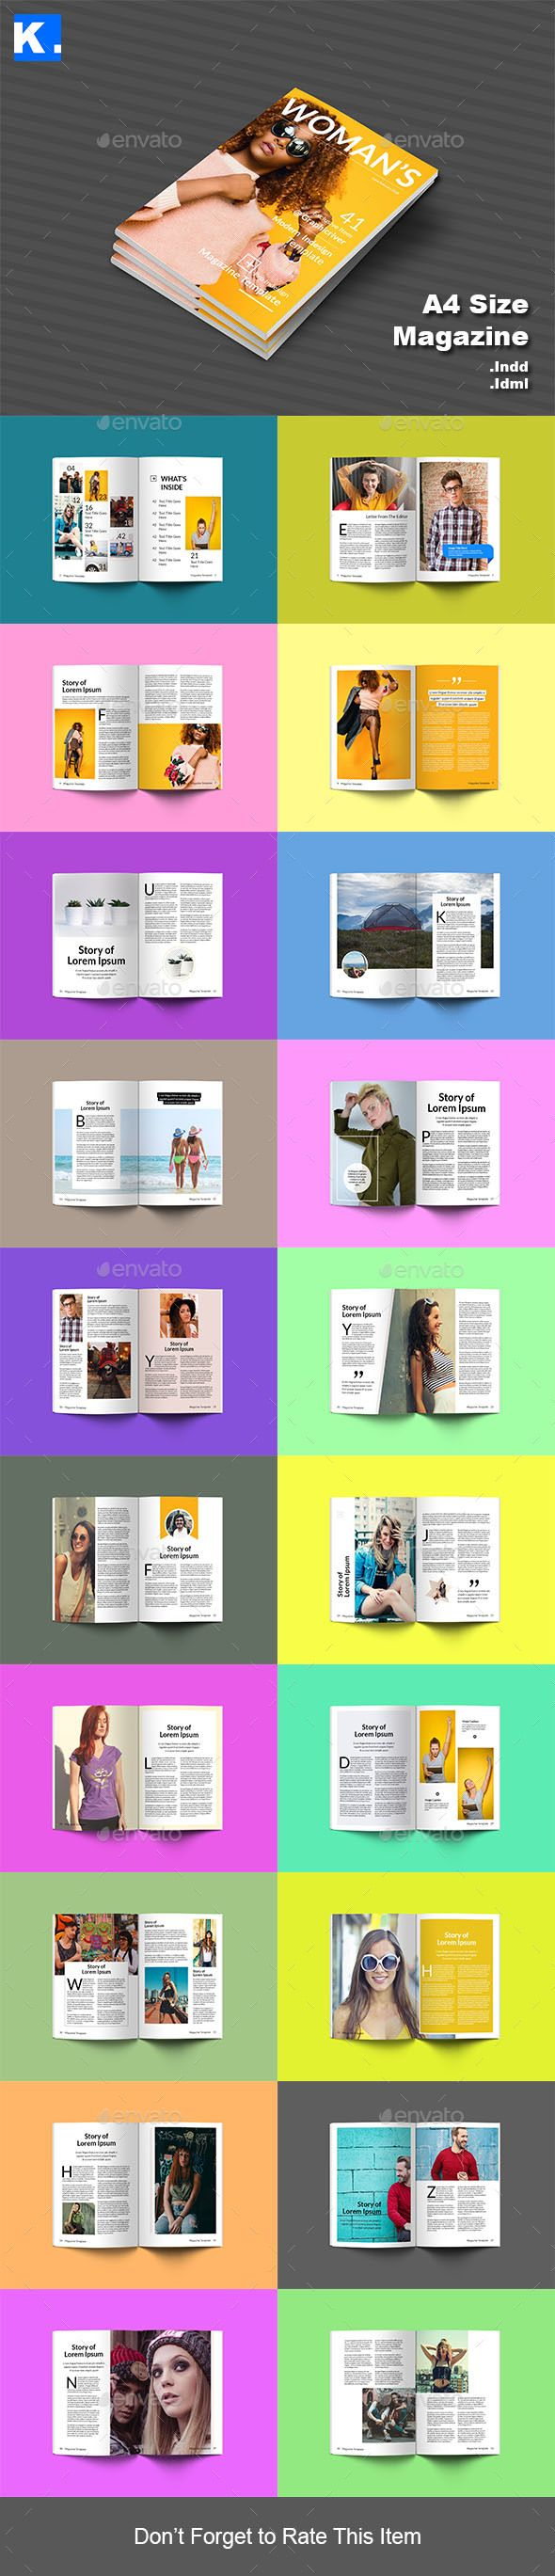 best 25  adobe indesign ideas on pinterest